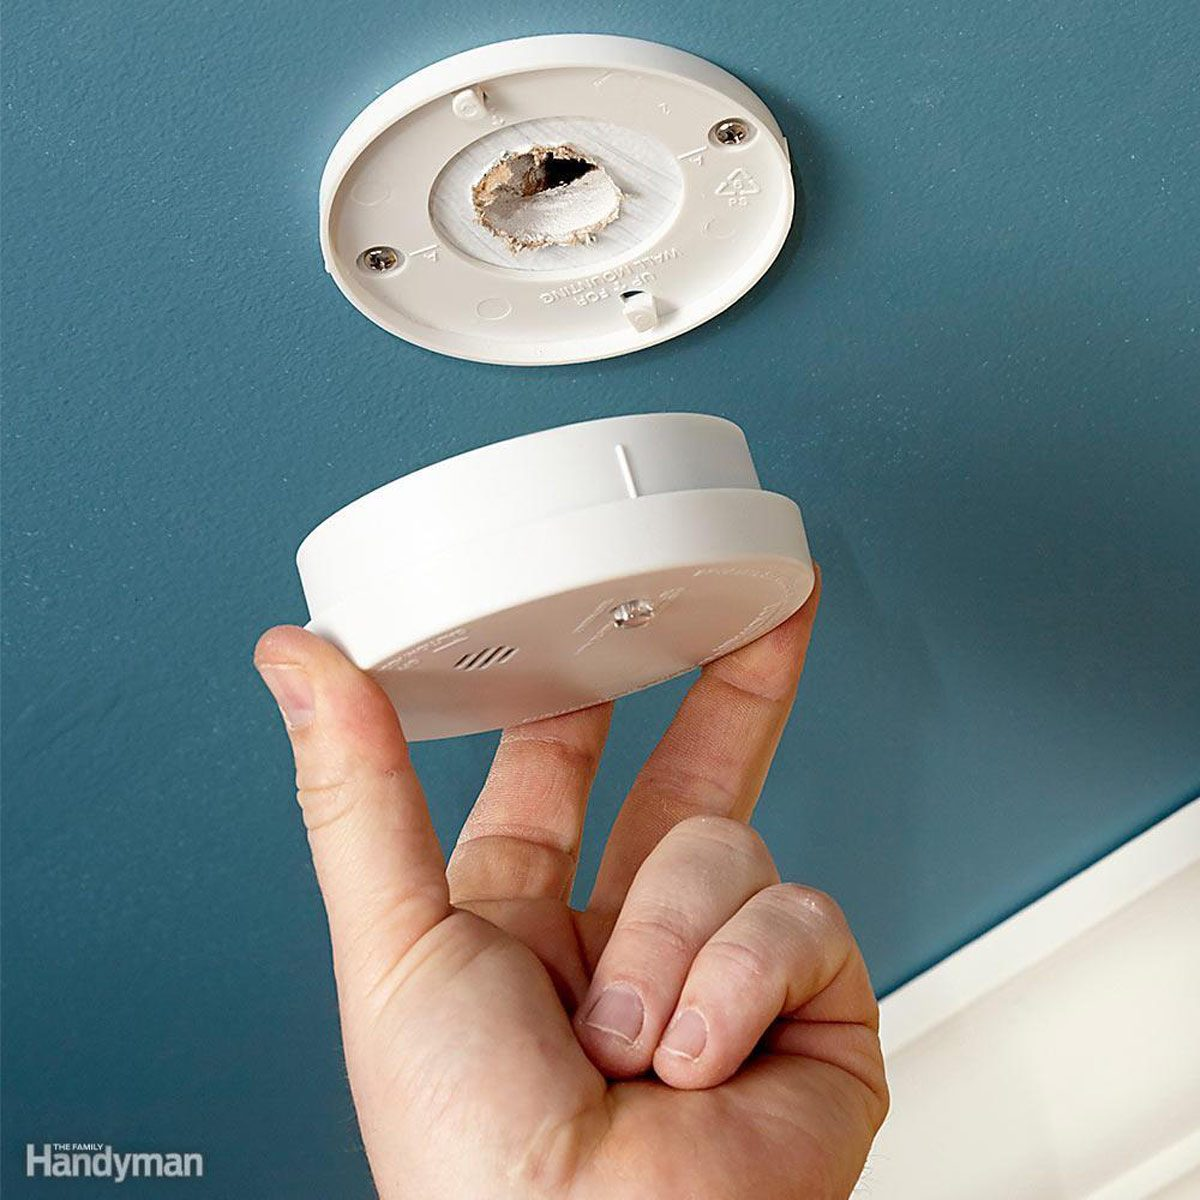 Test and Replace the Batteries in Smoke Detectors